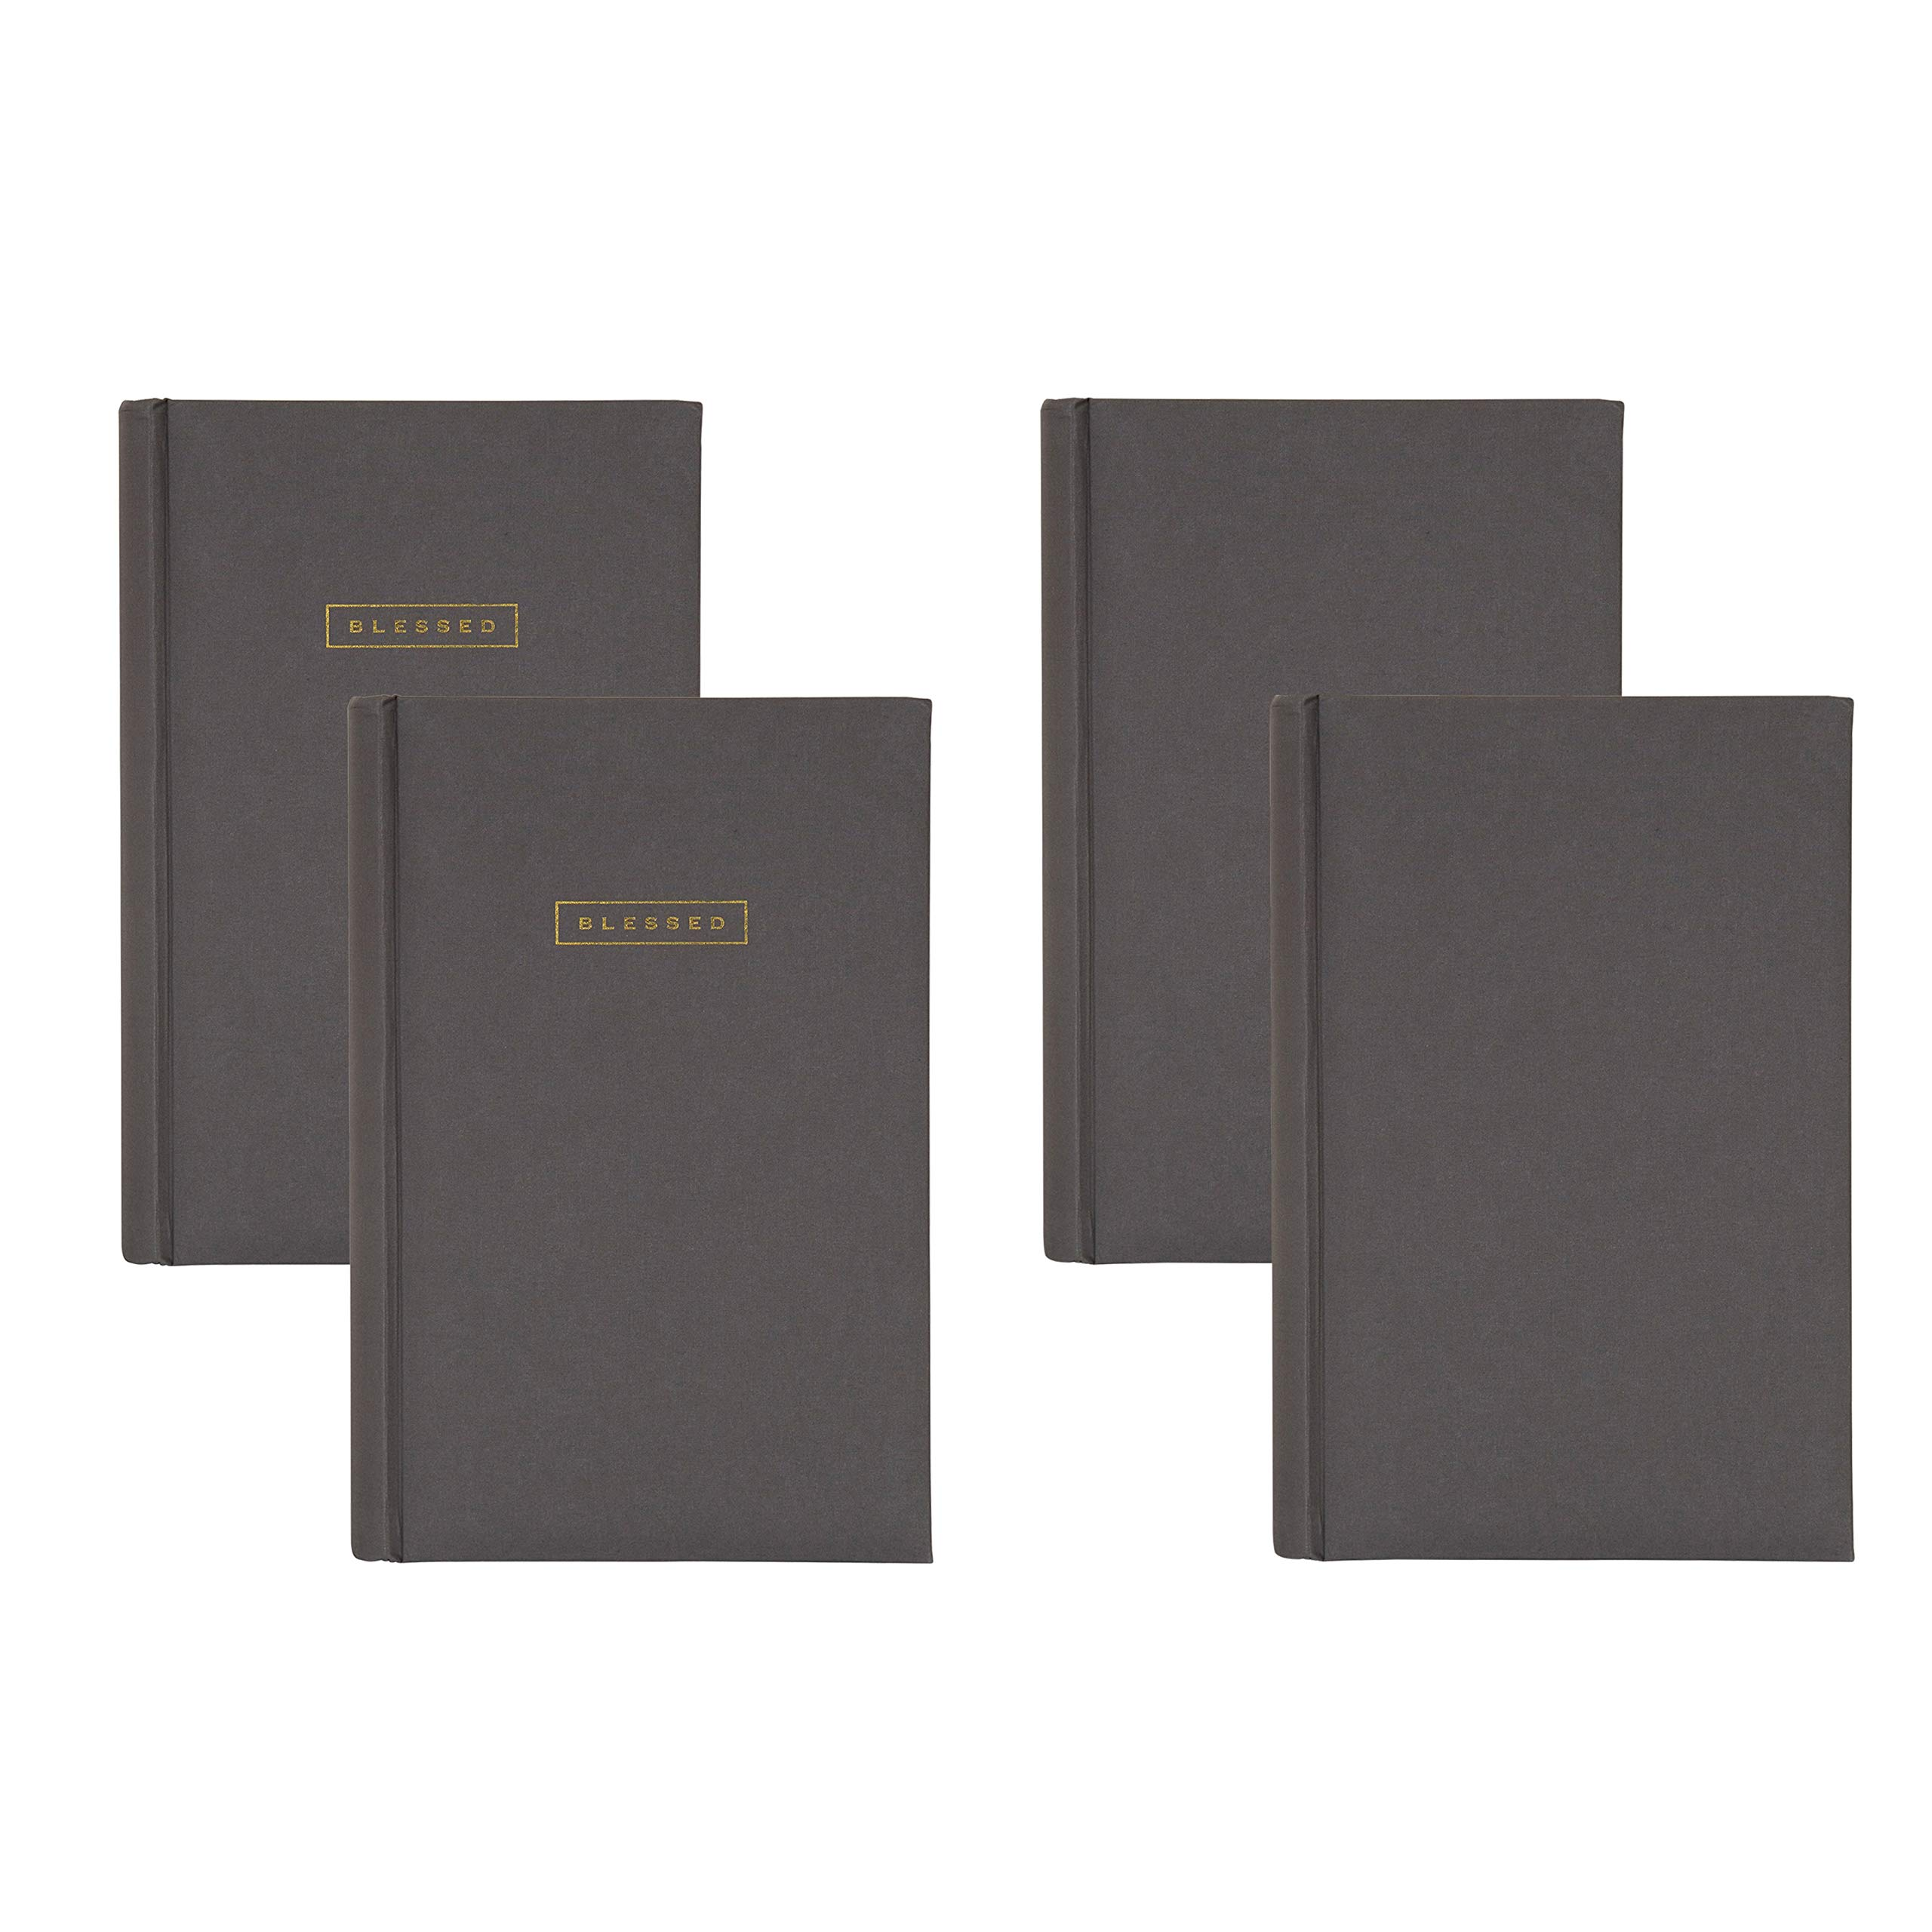 DesignOvation Fabric Deluxe Photo Album with 2 Blank and 2 Front Cover Sentiment Blessed in Gold Block Letters, Holds 300 4x6 Photos, Gray, Set of 4 by DesignOvation